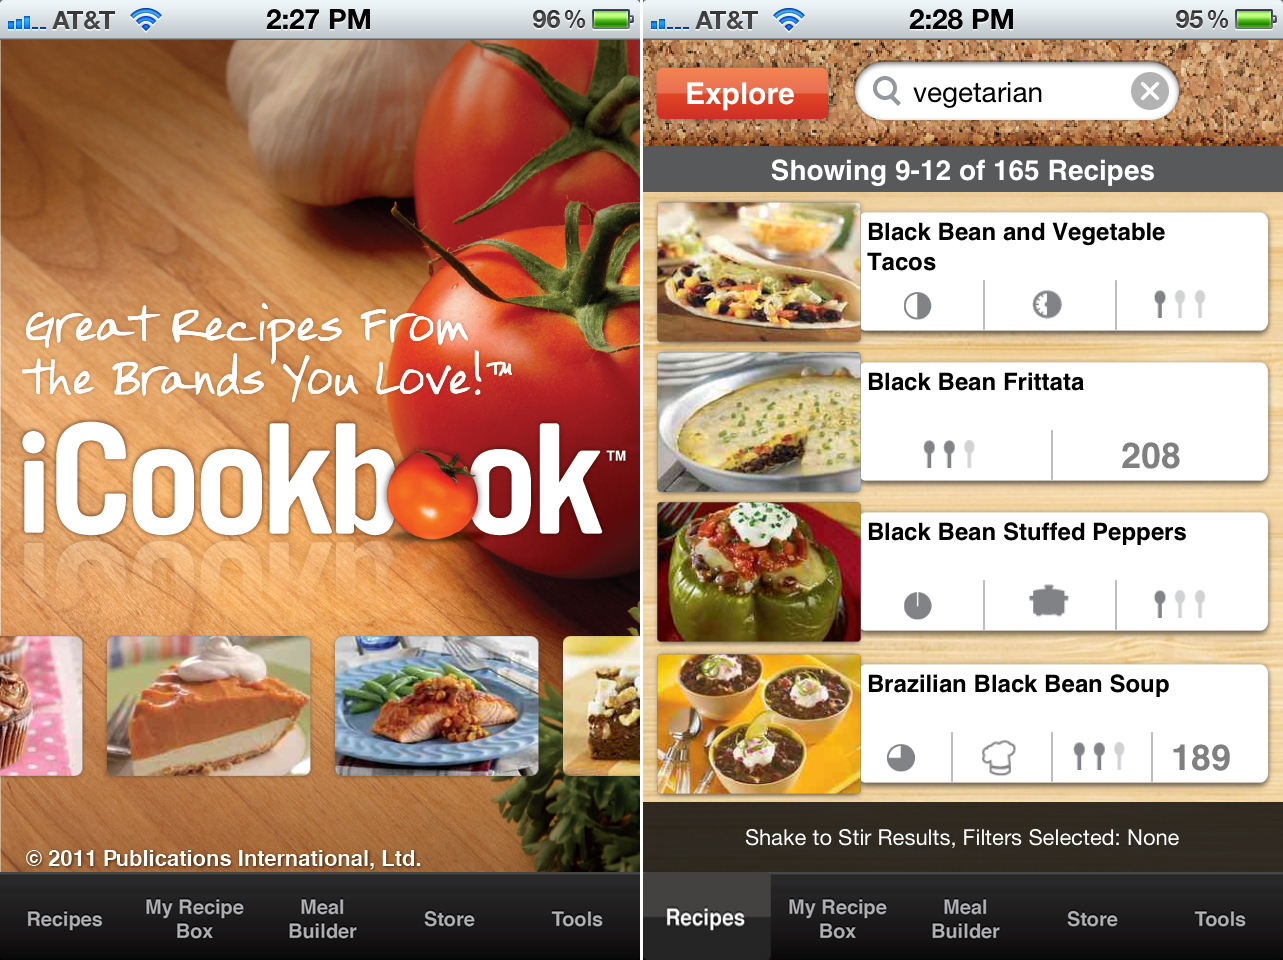 iCookbook Gains iPhone, iCloud, And AirPlay Support With Latest Update